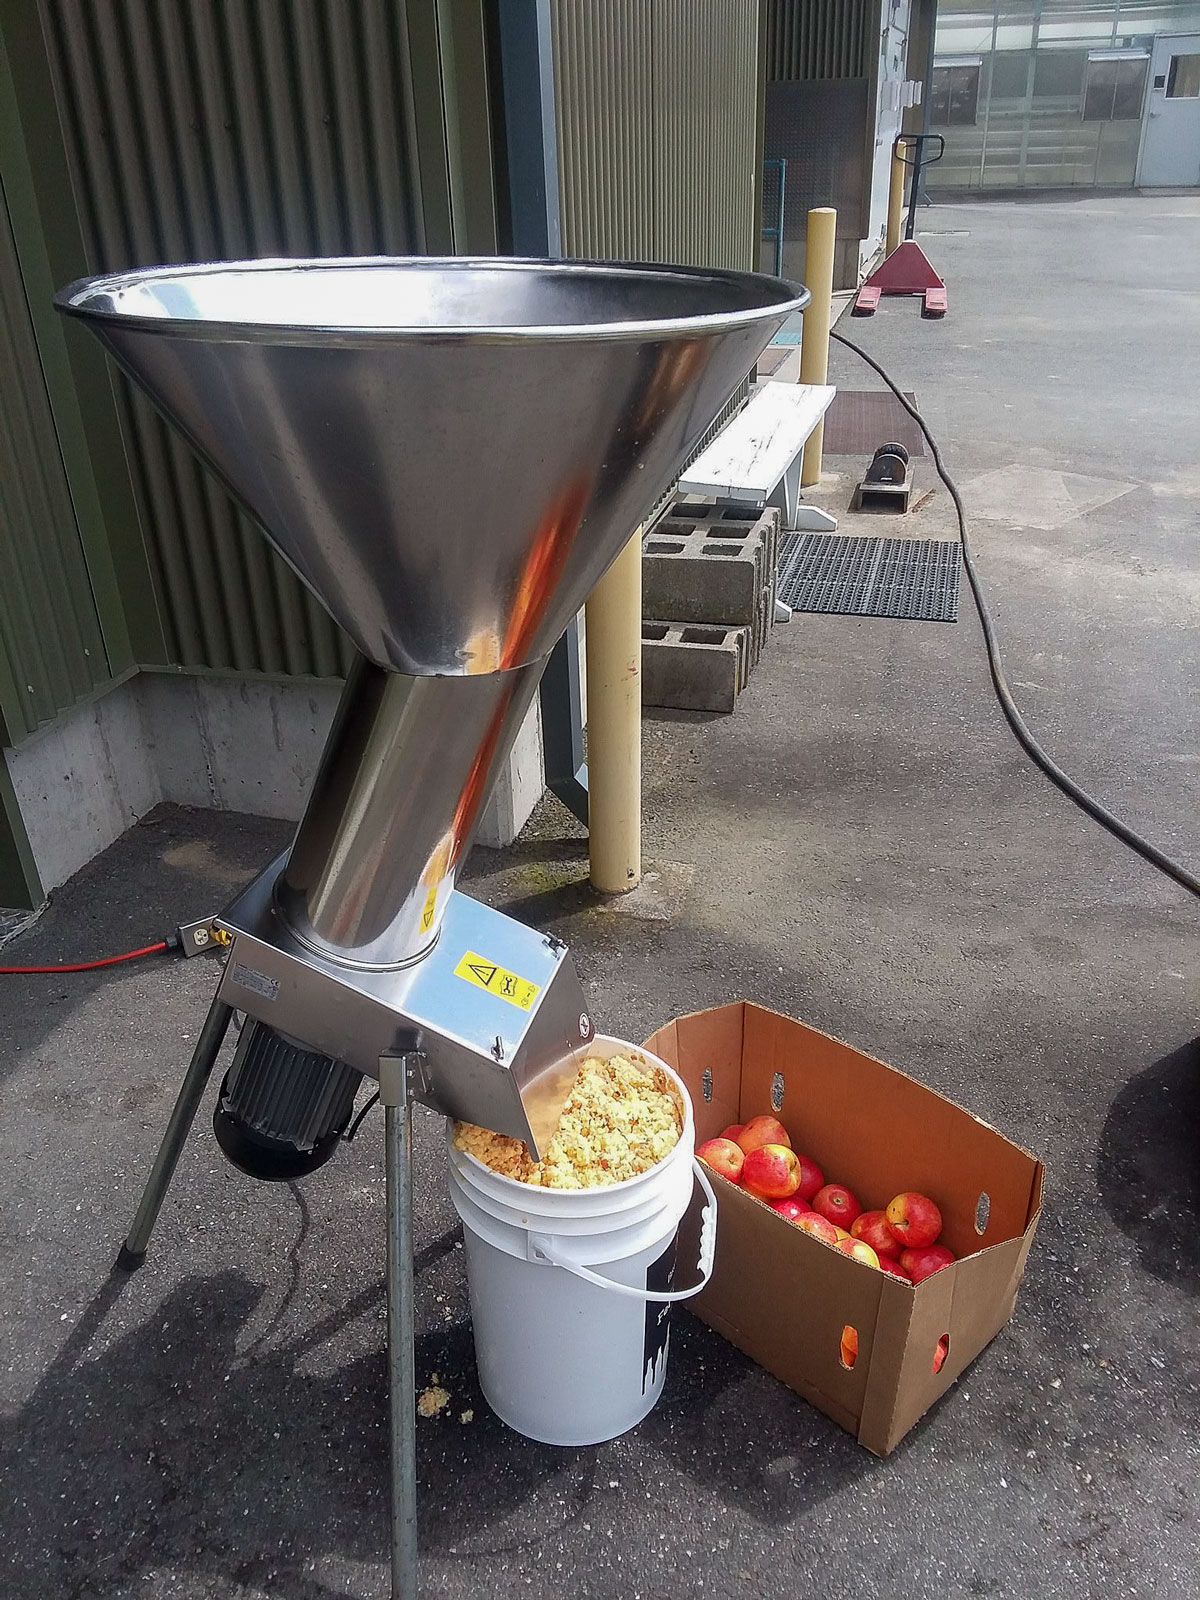 A fruit grinder processes apples at the Sensory Analysis of Fruit Wines and Ciders workshop (August 5, 2017).